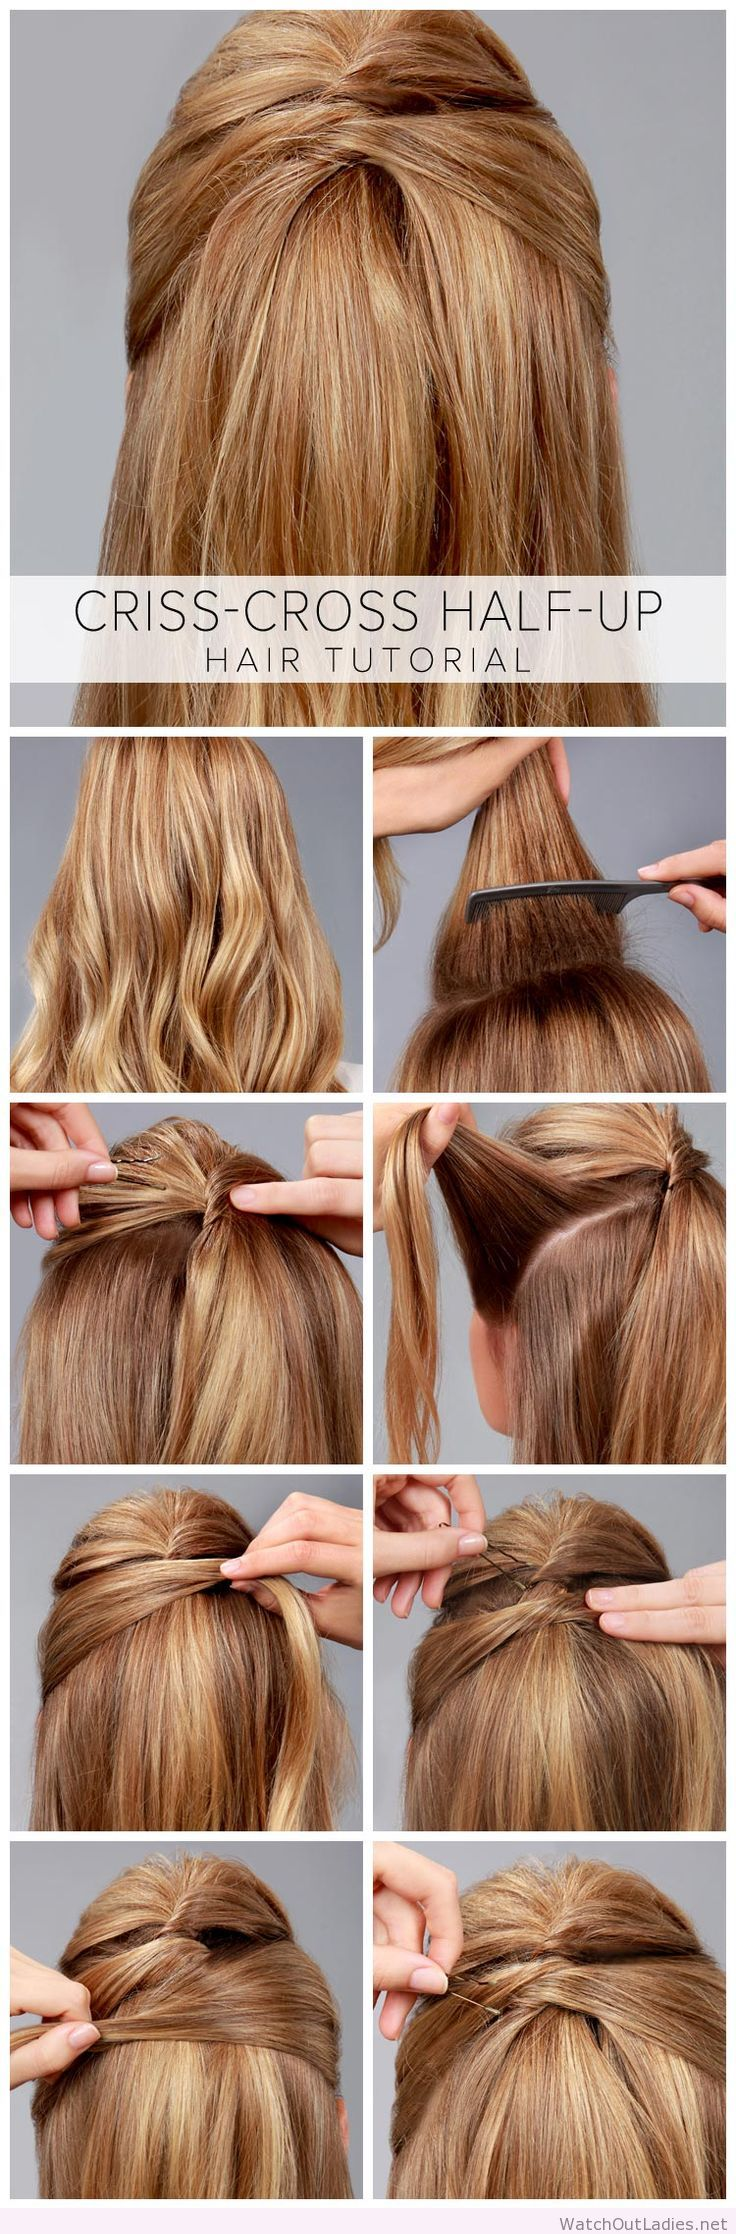 Nice halfup hair tutorial hair pinterest tutorials nice and